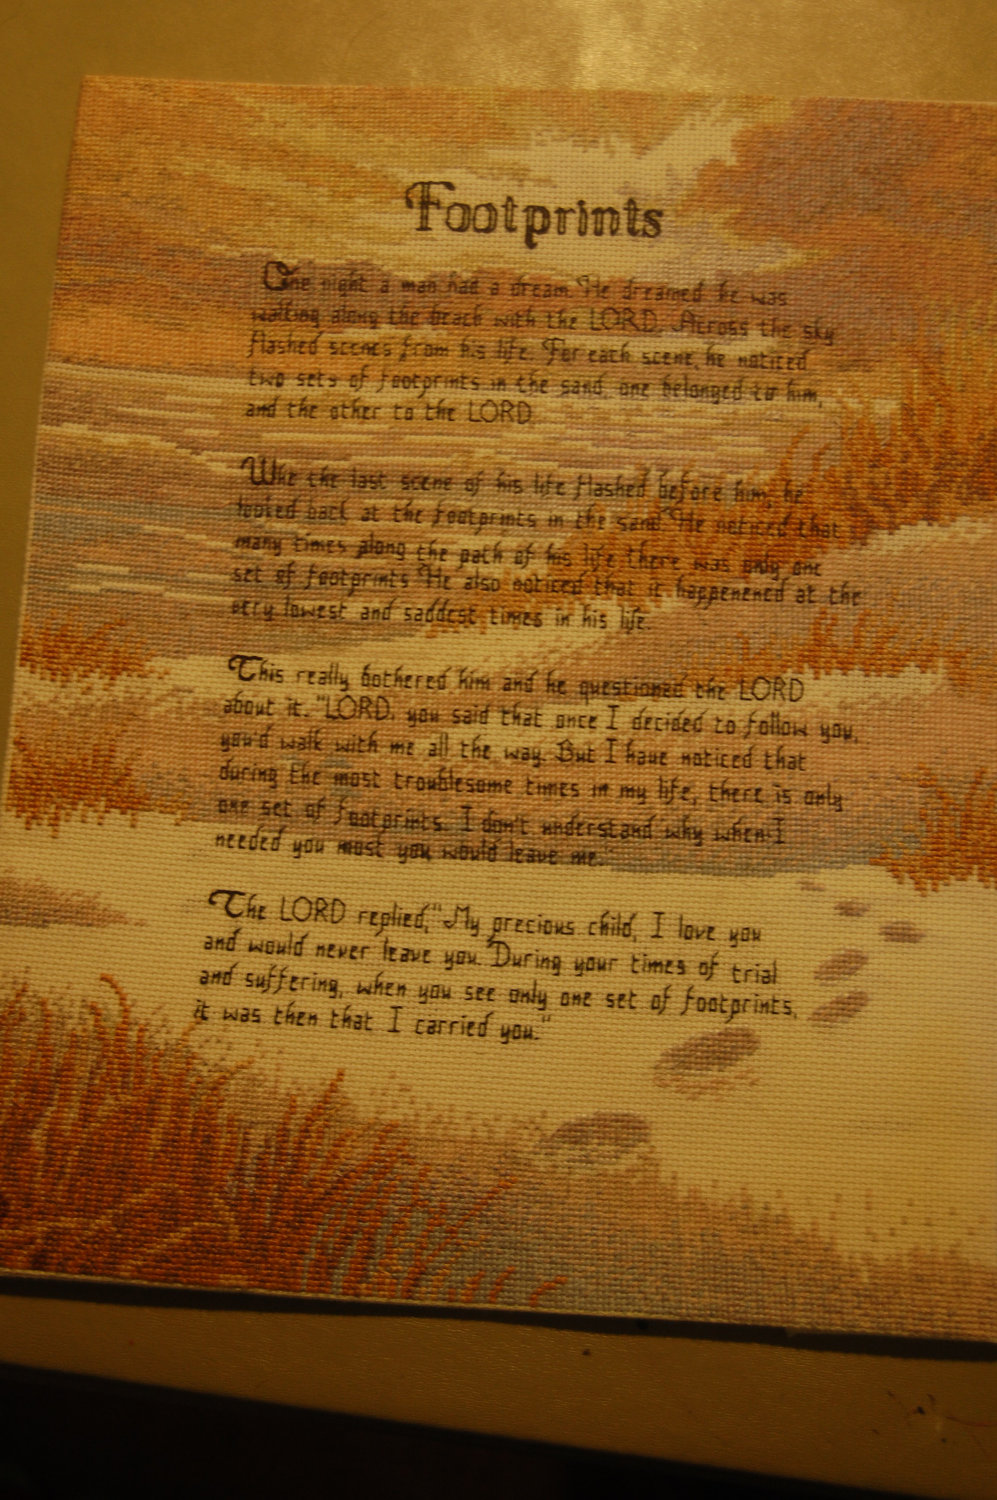 Footprints In The Sand Poem Background Footprints in the sand by 997x1500